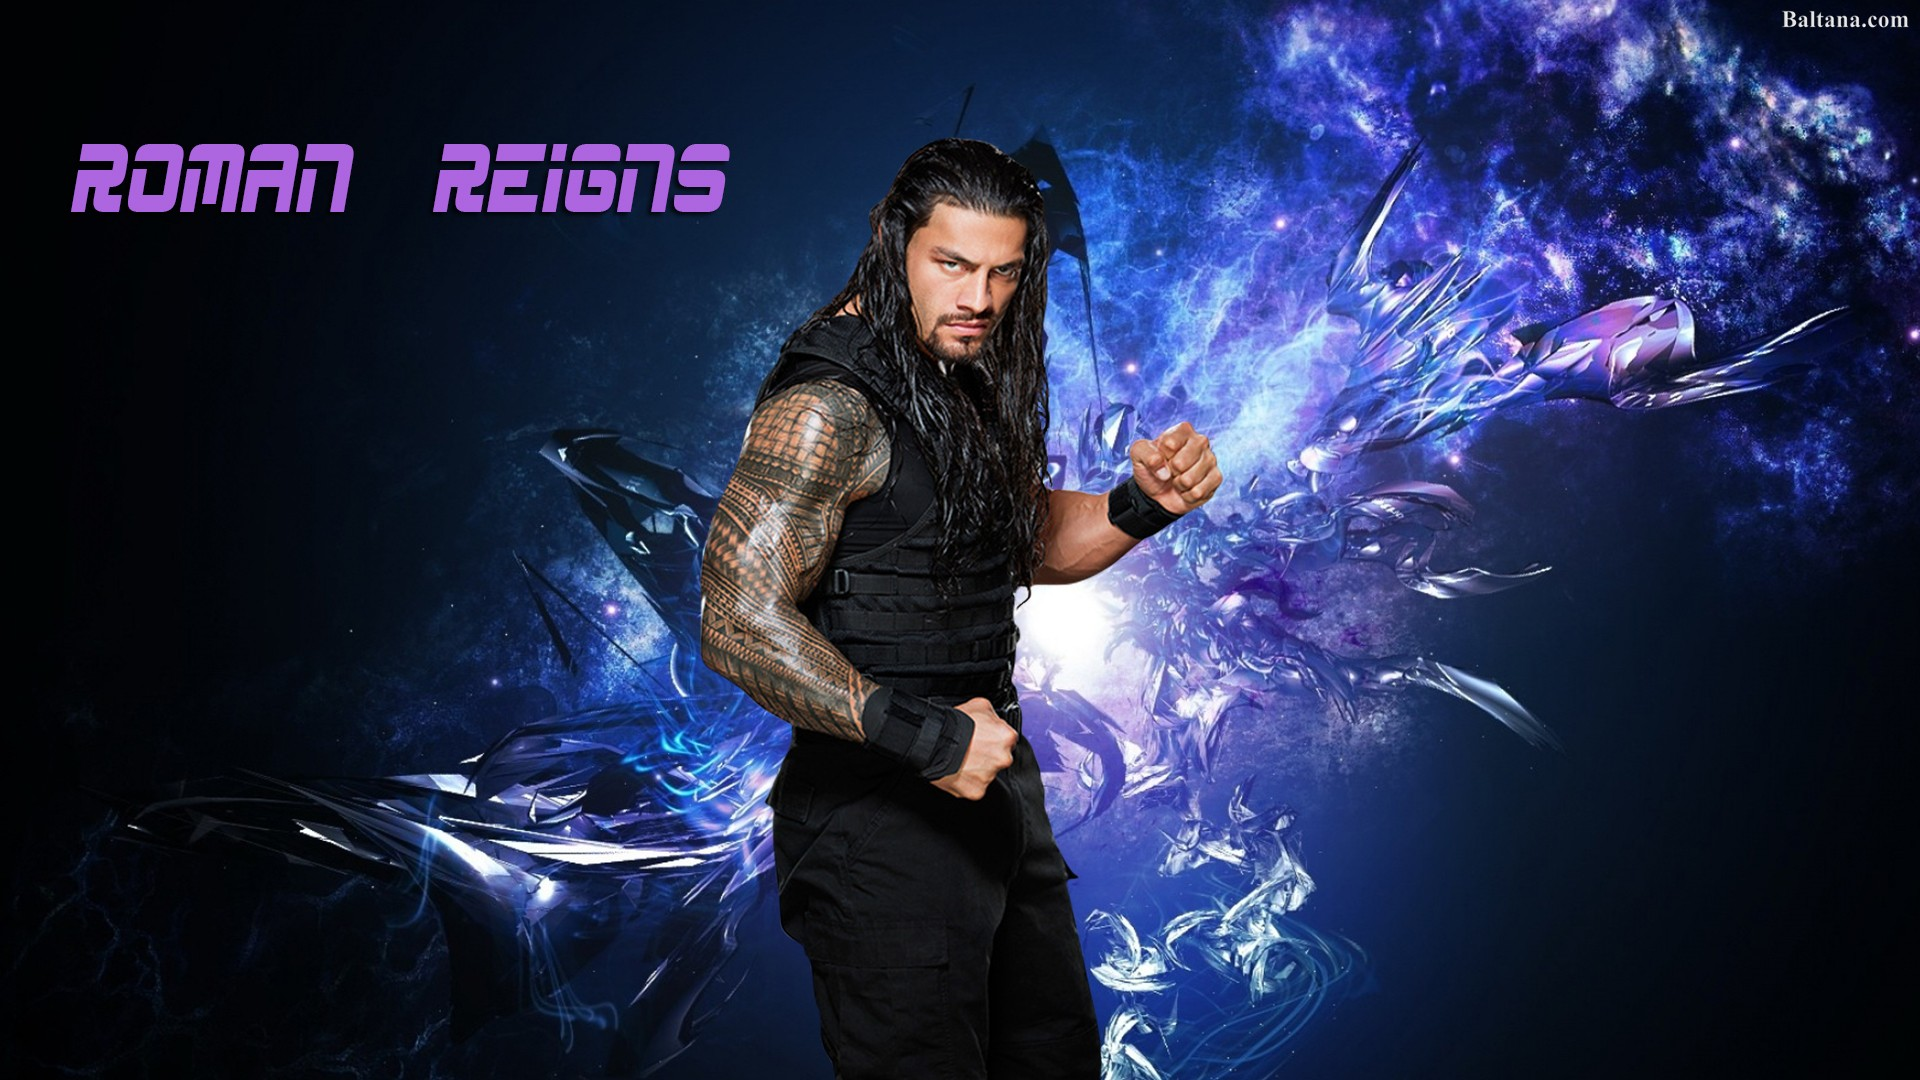 Roman Reigns Hd Wallpapers Seth Rollins Wallpaper Hd